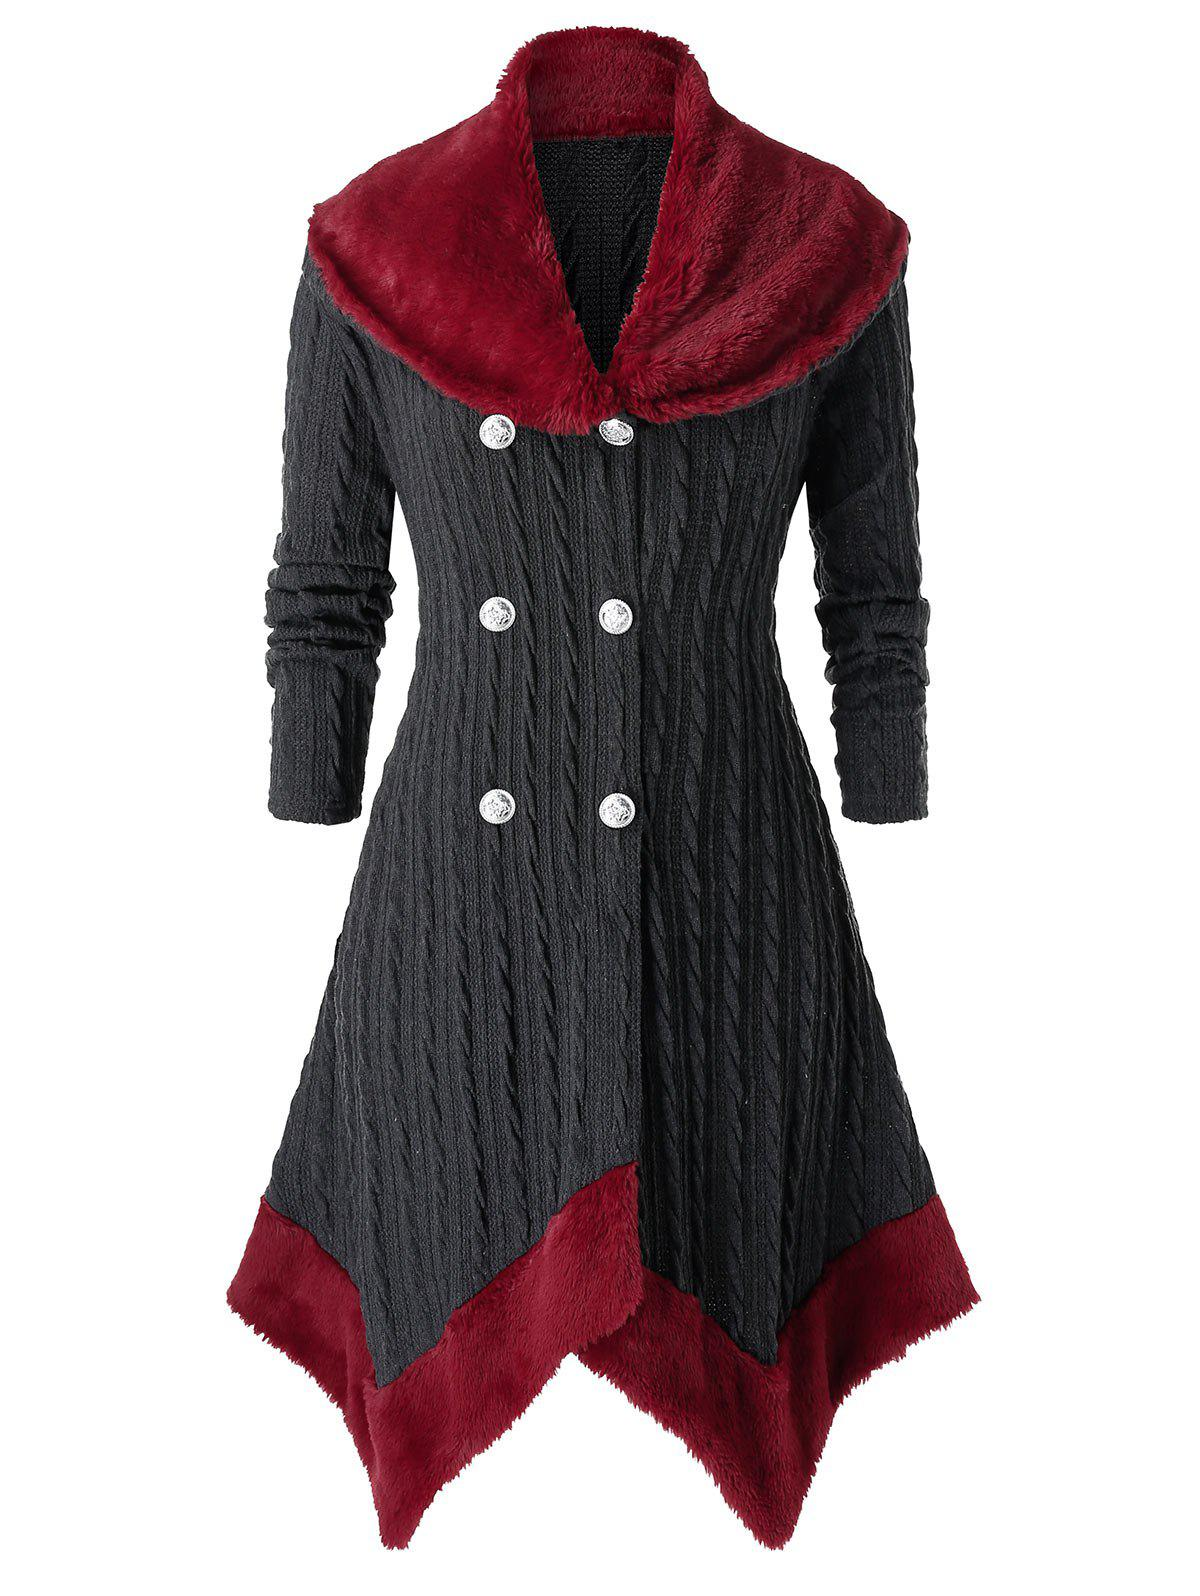 Sale Plus Size Handkerchief Contrast Faux Fur Cable Knit Cardigan